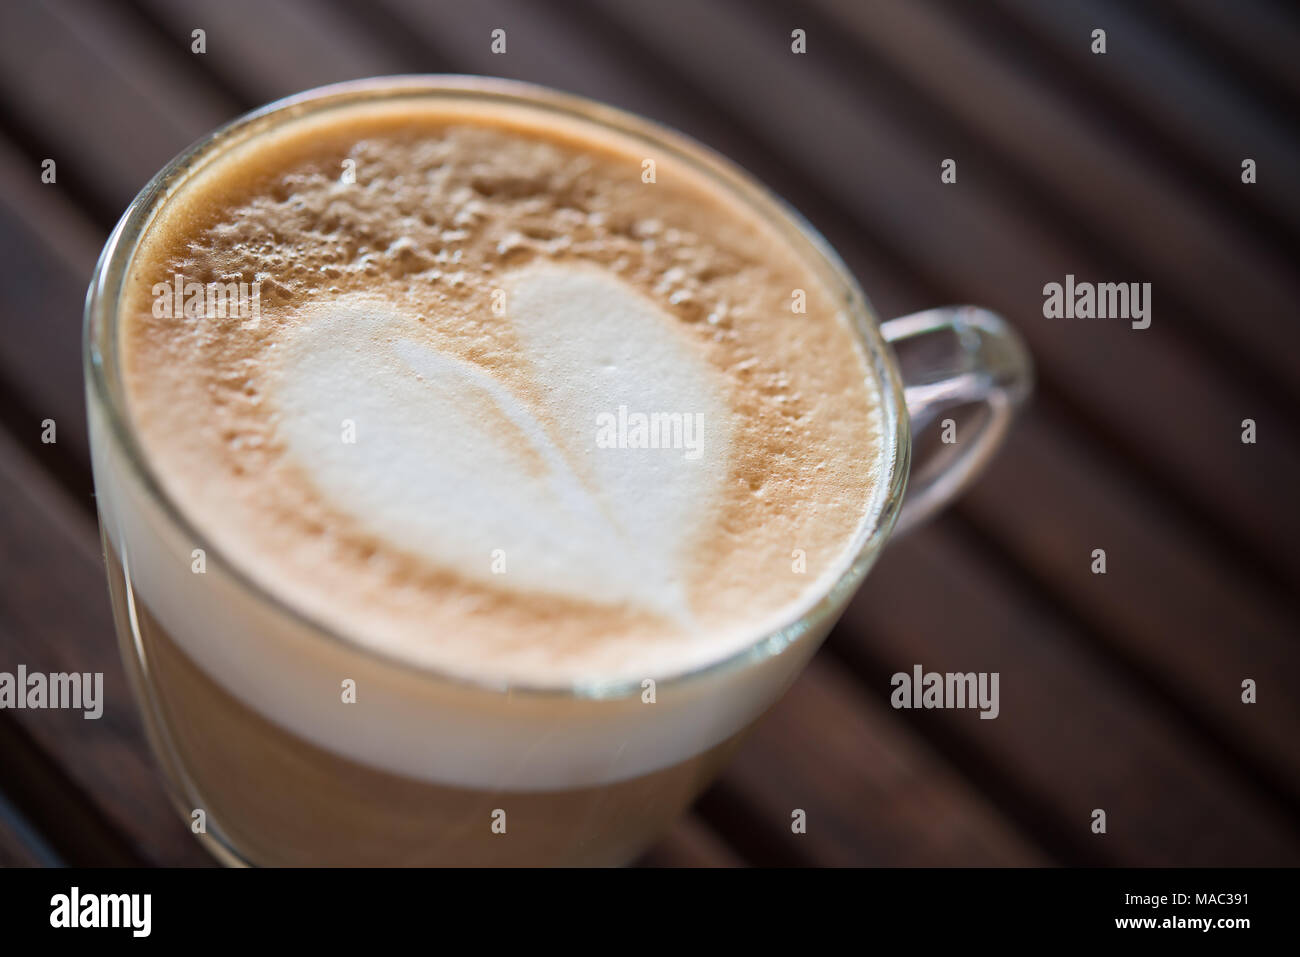 Close up of cappuccino avec motif en forme de coeur au lait café. une tasse de café l'art. Photo Stock